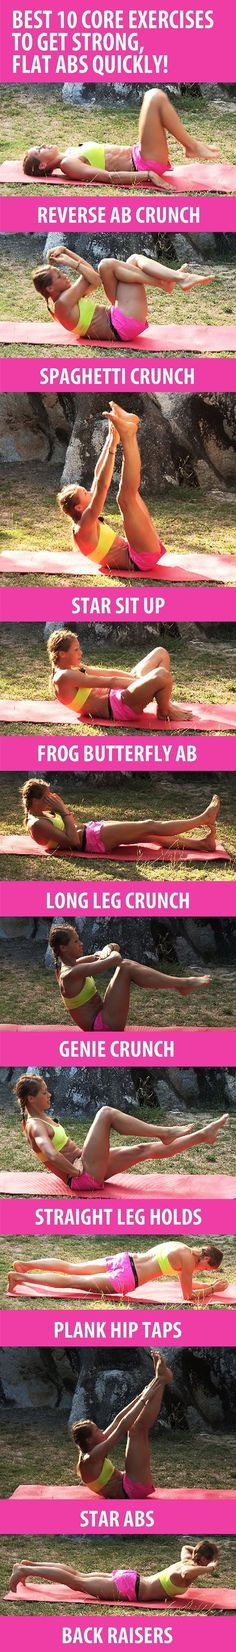 Try these top new core moves for amazing abs! Perform 3-5 days per week for about 10-15 minutes & you will get great results! VISIT skinnyenvy.com #flatabs #homeworkouts #slimdown